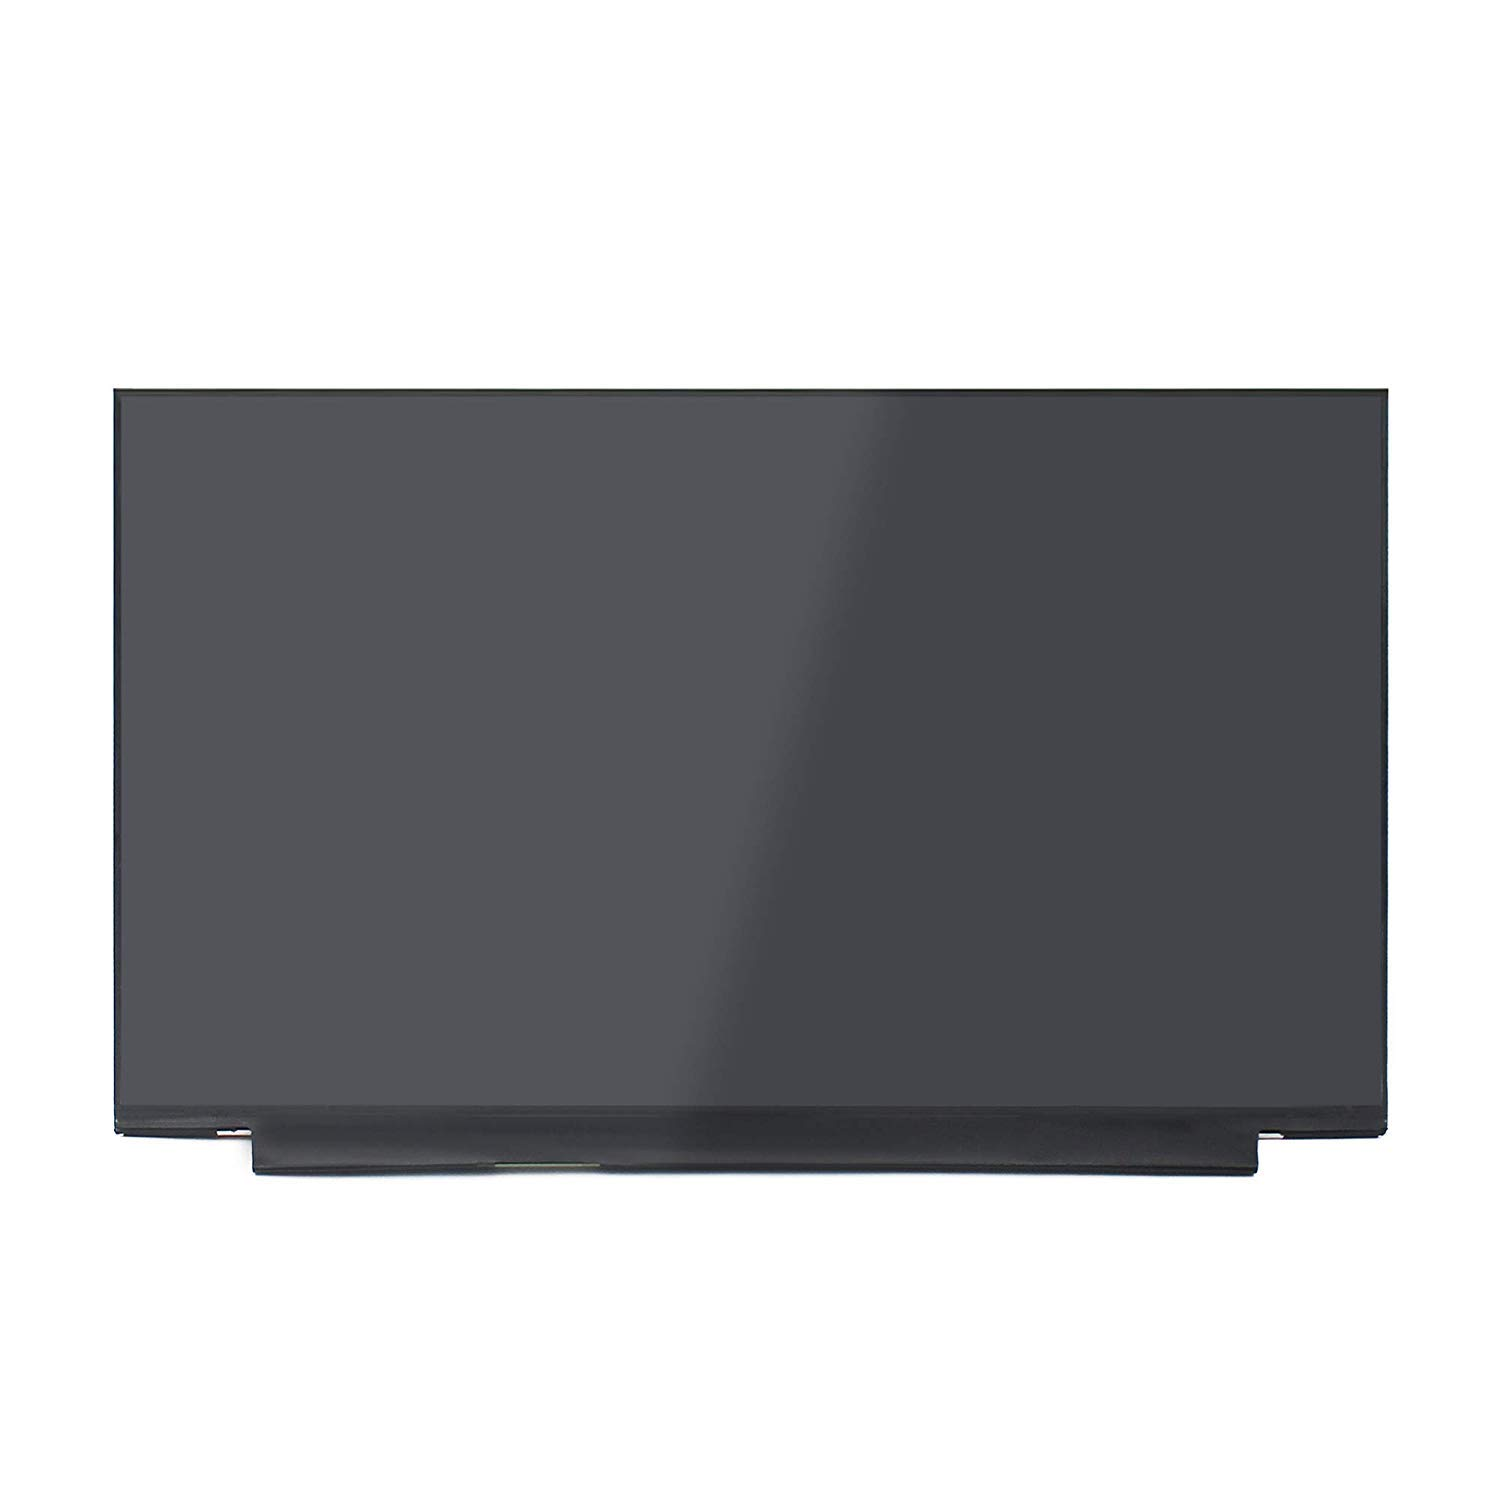 New 15.6'' 72% NTSC 144Hz FullHD 1080P IPS LED LCD Display Screen Panel Replacement for H P Gaming Pavilion 15-cx0056wm 15-cx0077wm 15-cx0058wm by Vtekscreen (Image #1)